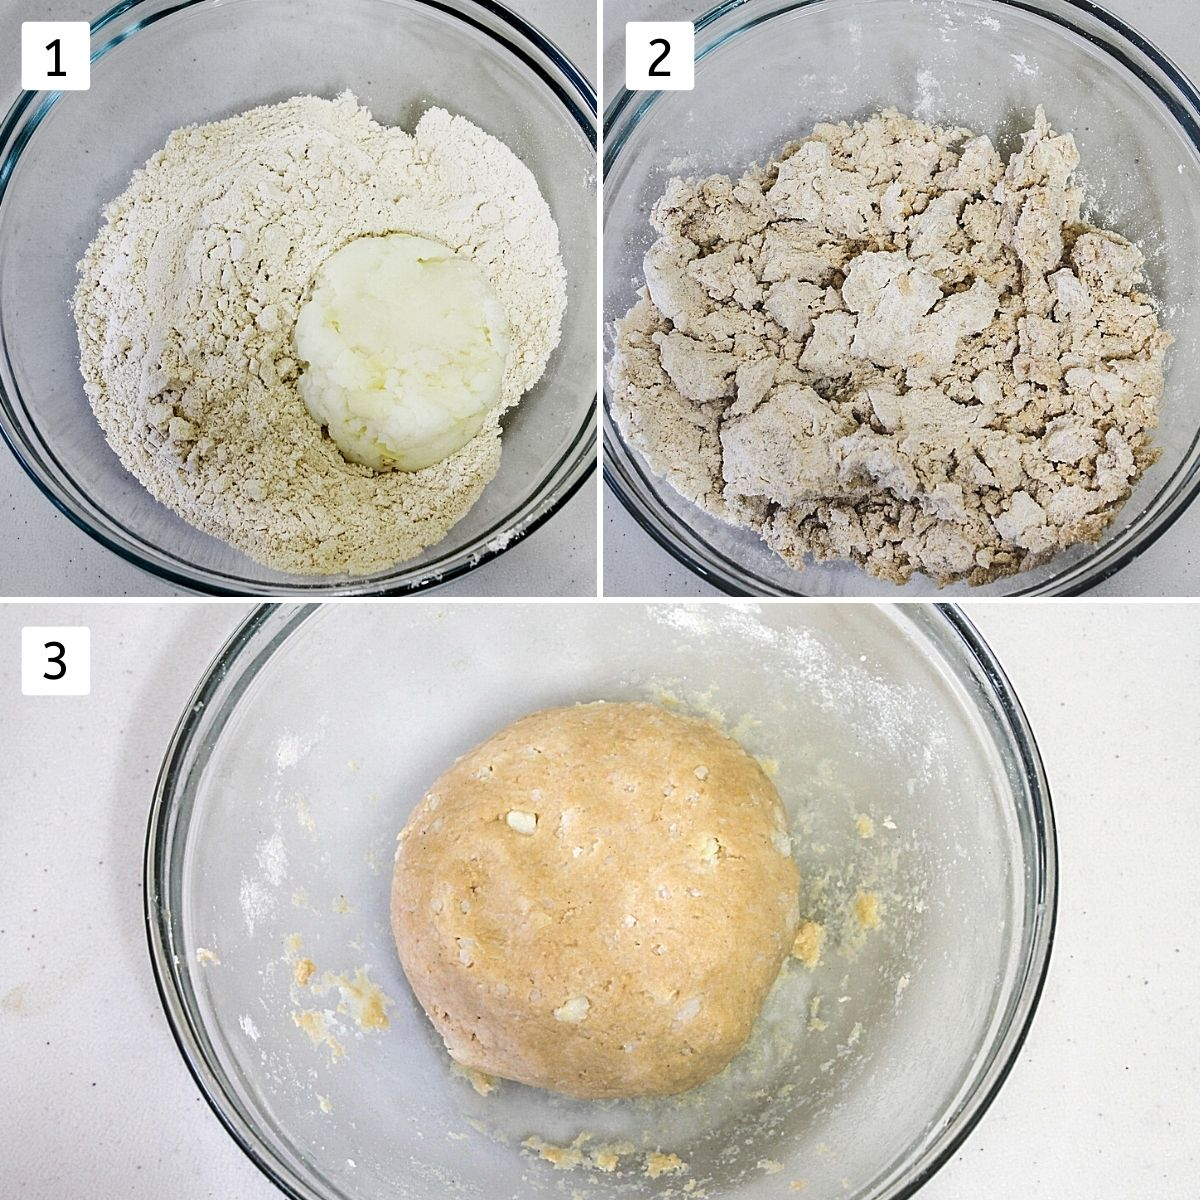 Collage of 3 steps shows flour and mashed potato in a bowl, mixed together and ready dough